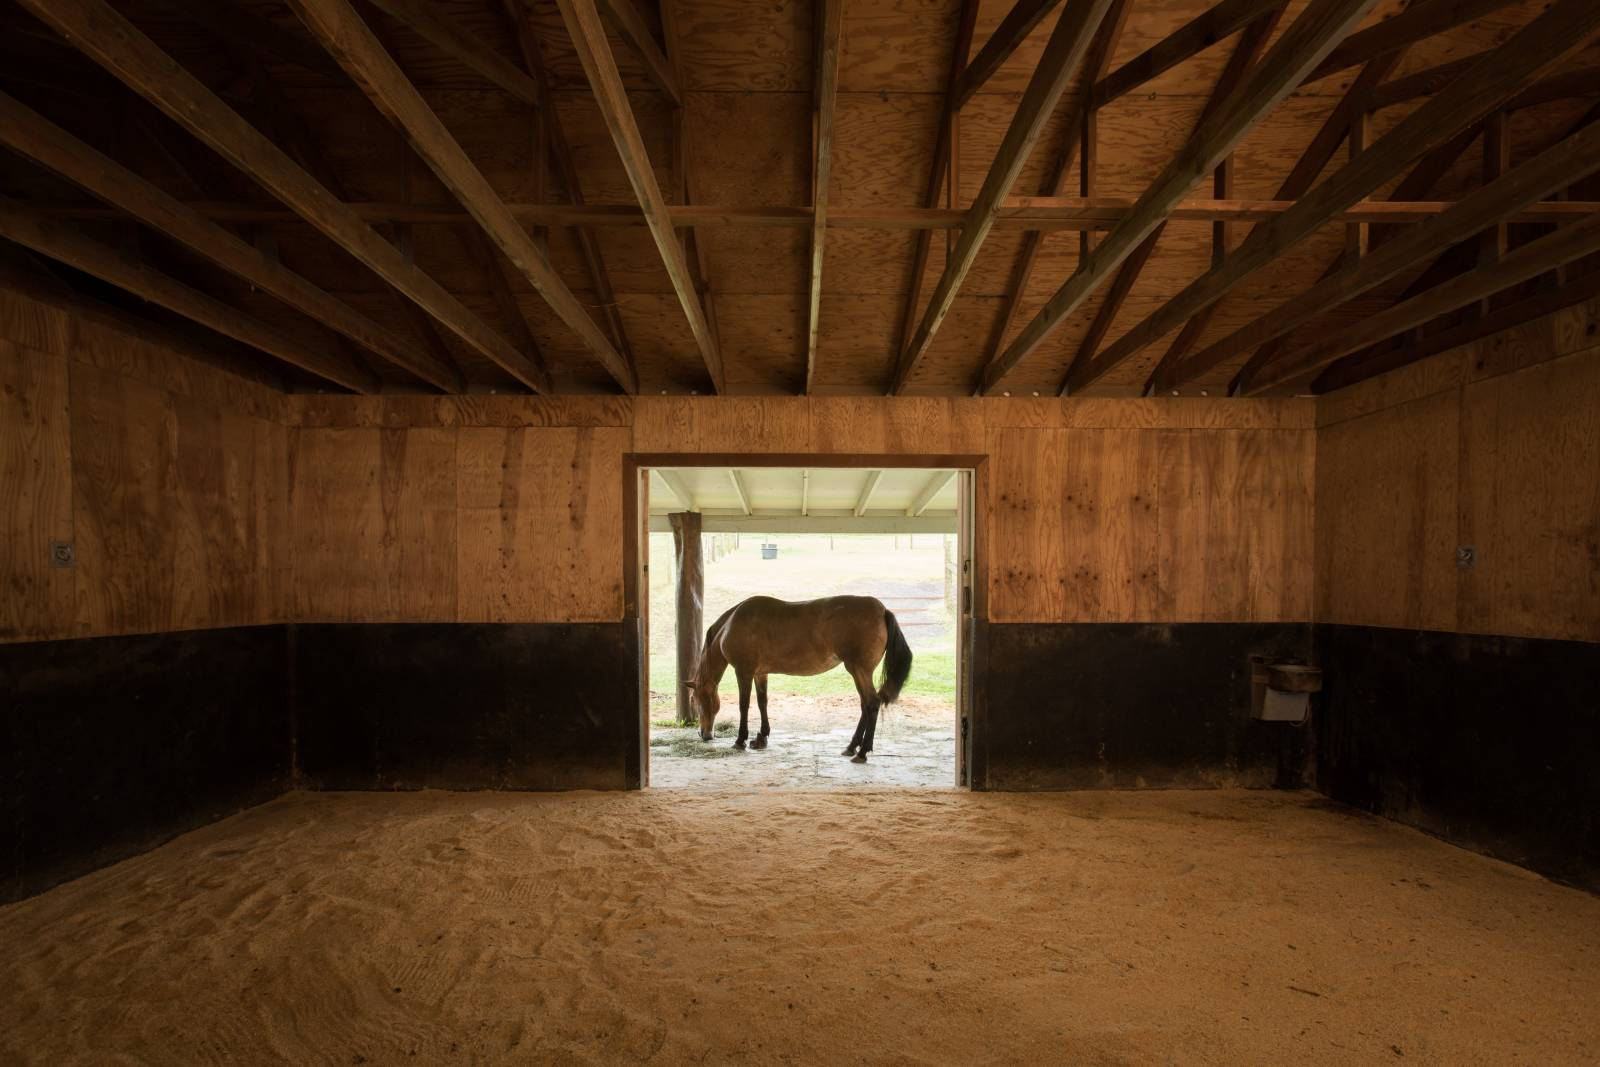 Property for sale with horse breeding barn